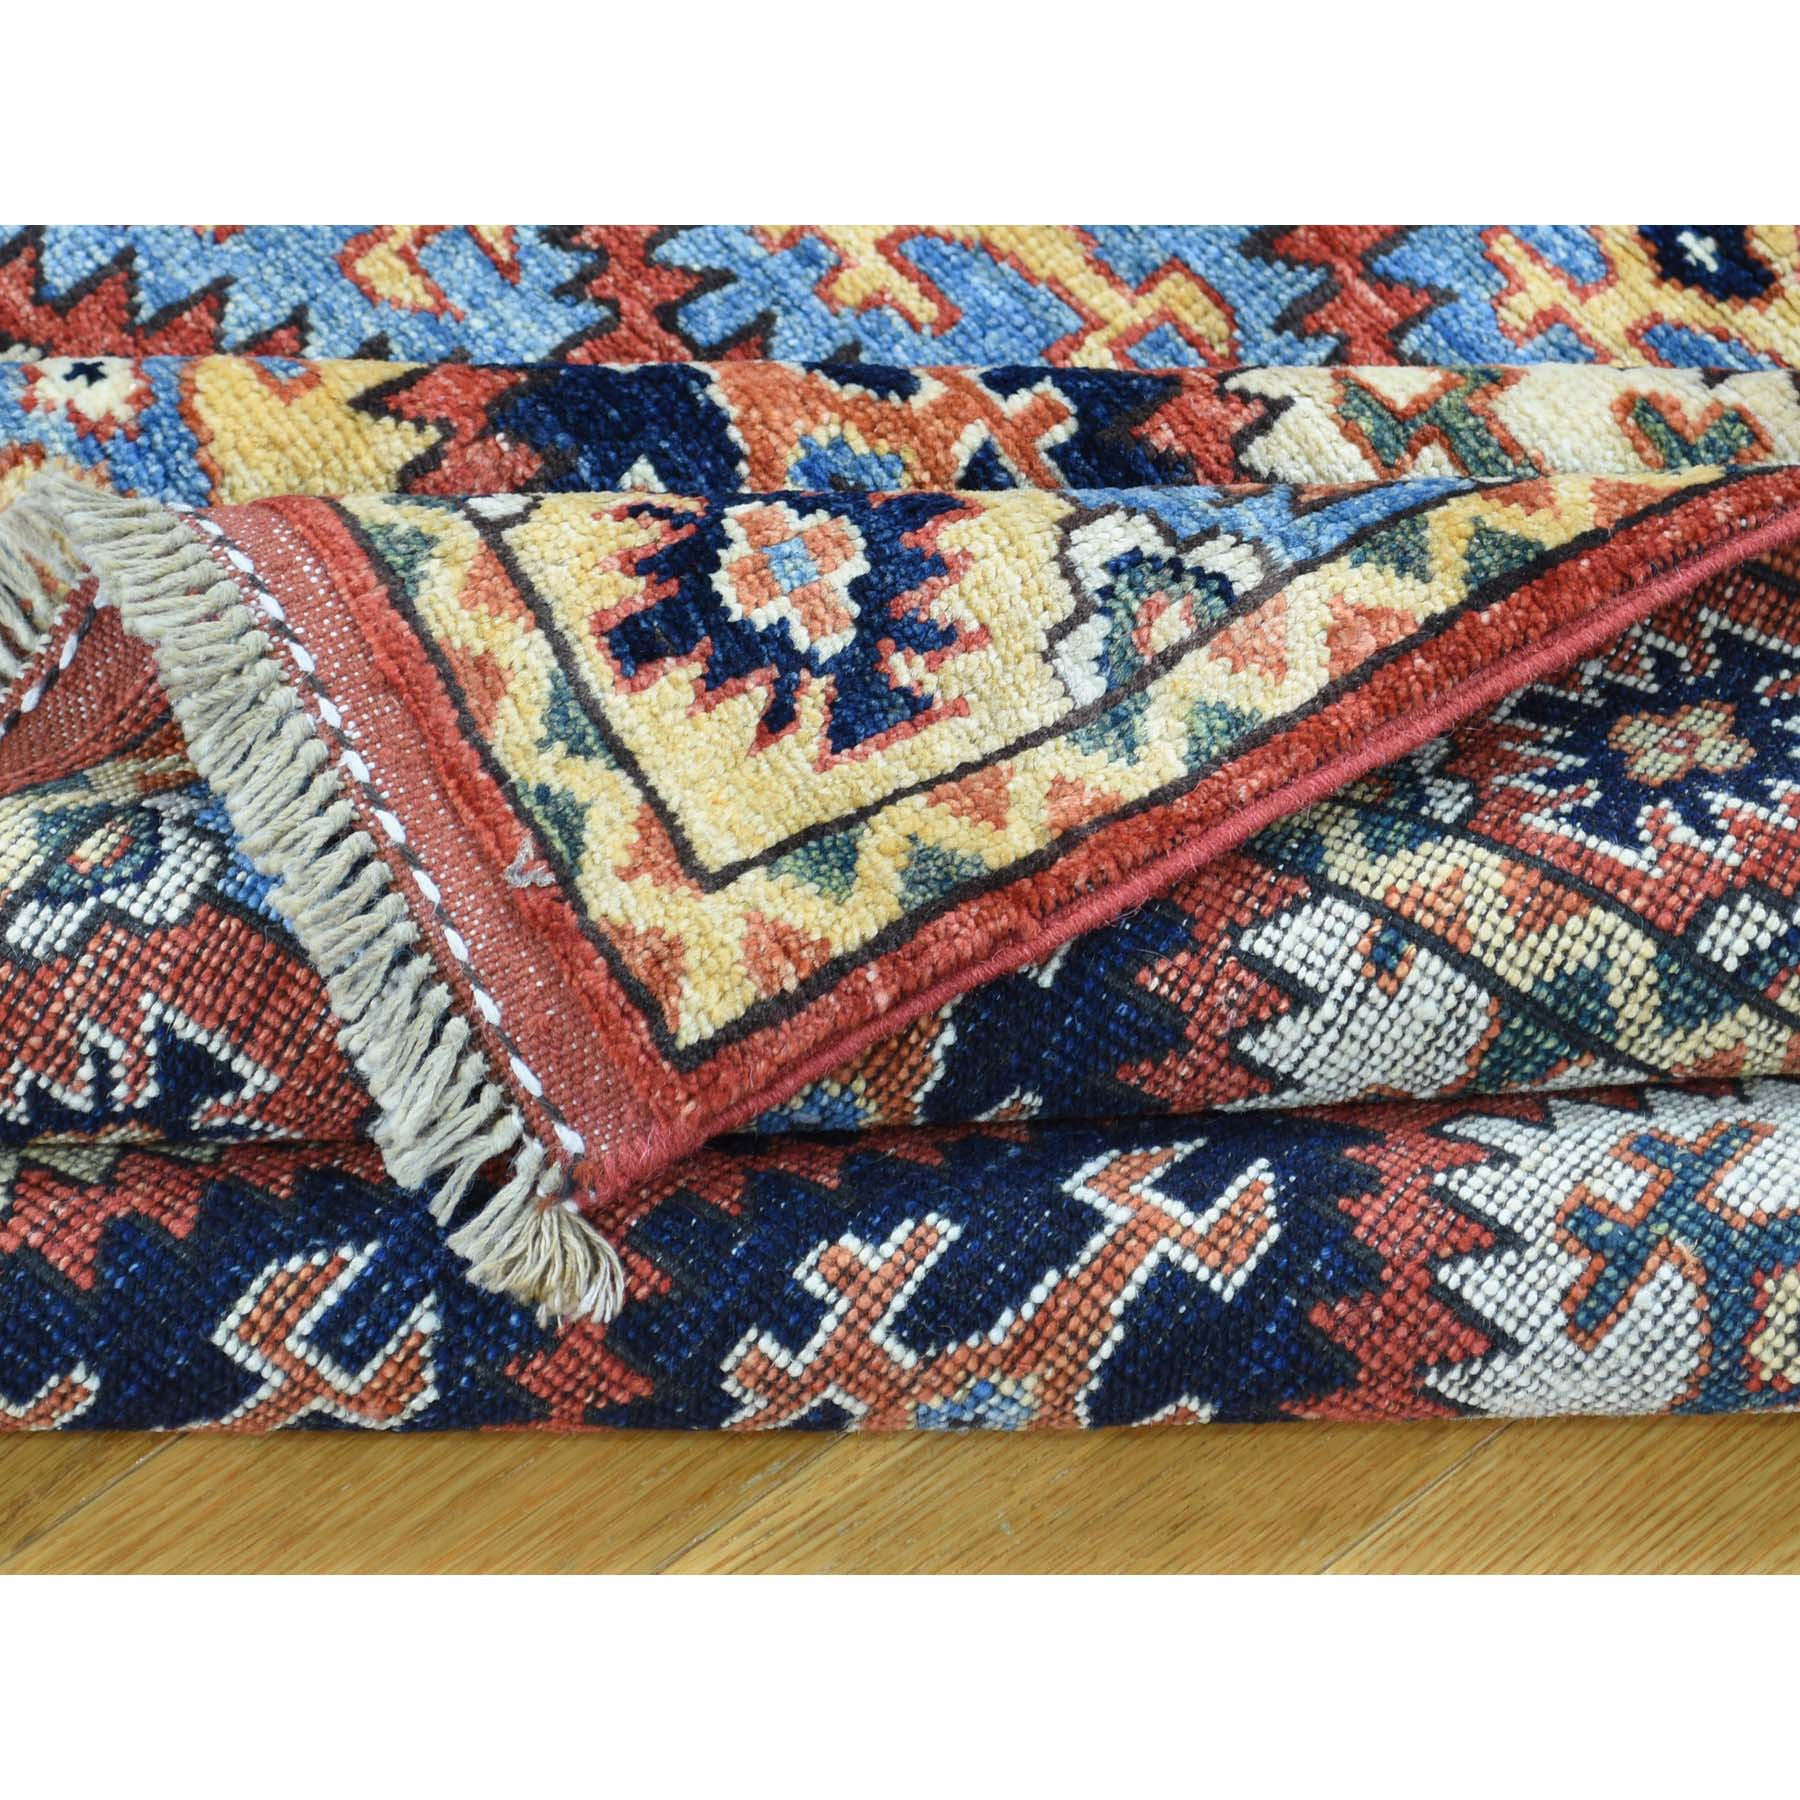 "Handmade Tribal & Geometric Rectangle Rug > Design# SH31808 > Size: 4'-2"" x 5'-8"" [ONLINE ONLY]"